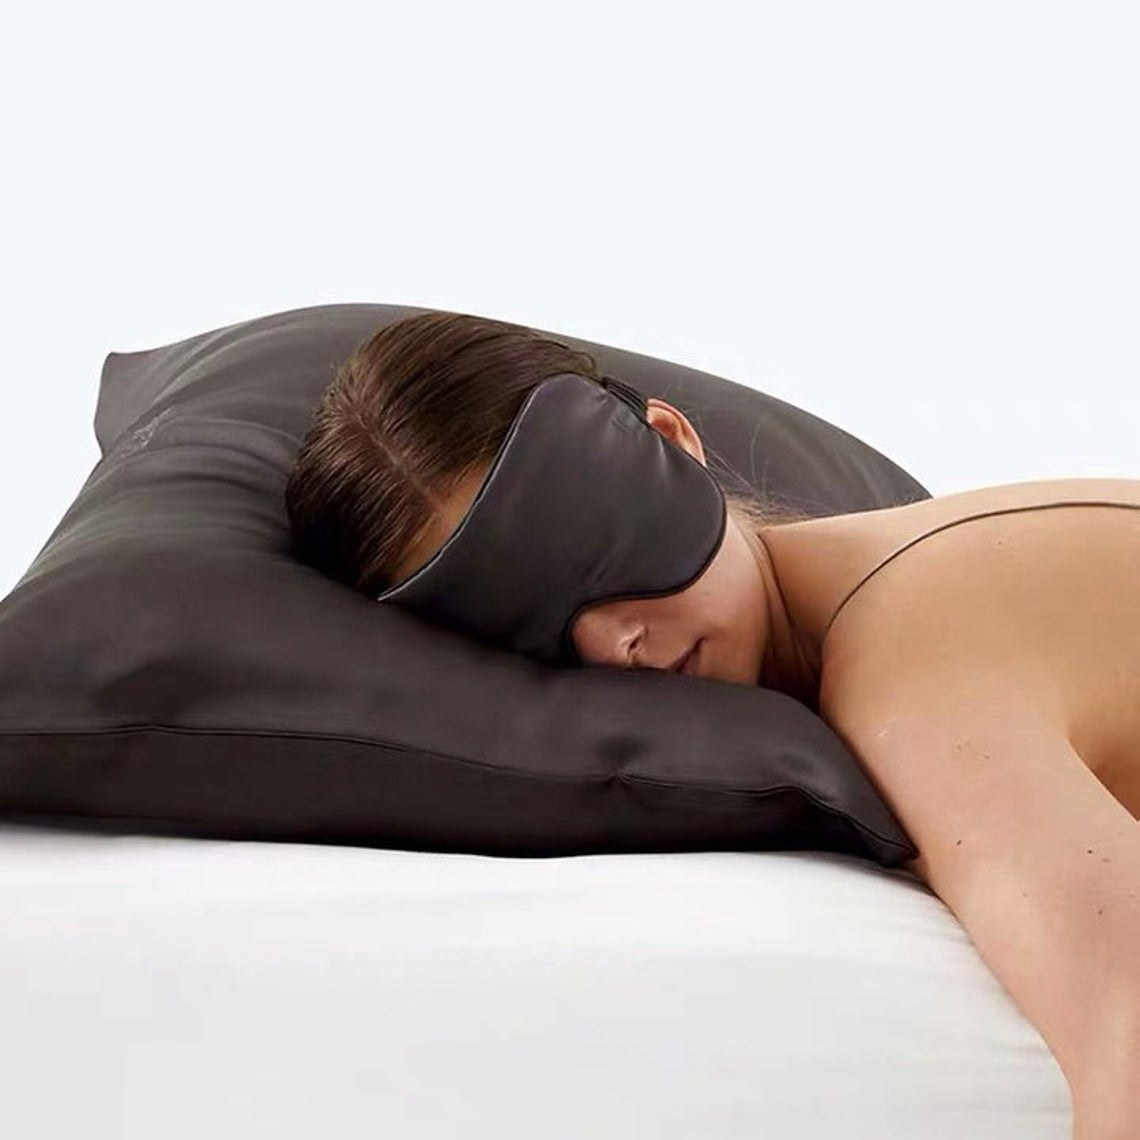 Model asleep on silk pillow with mask